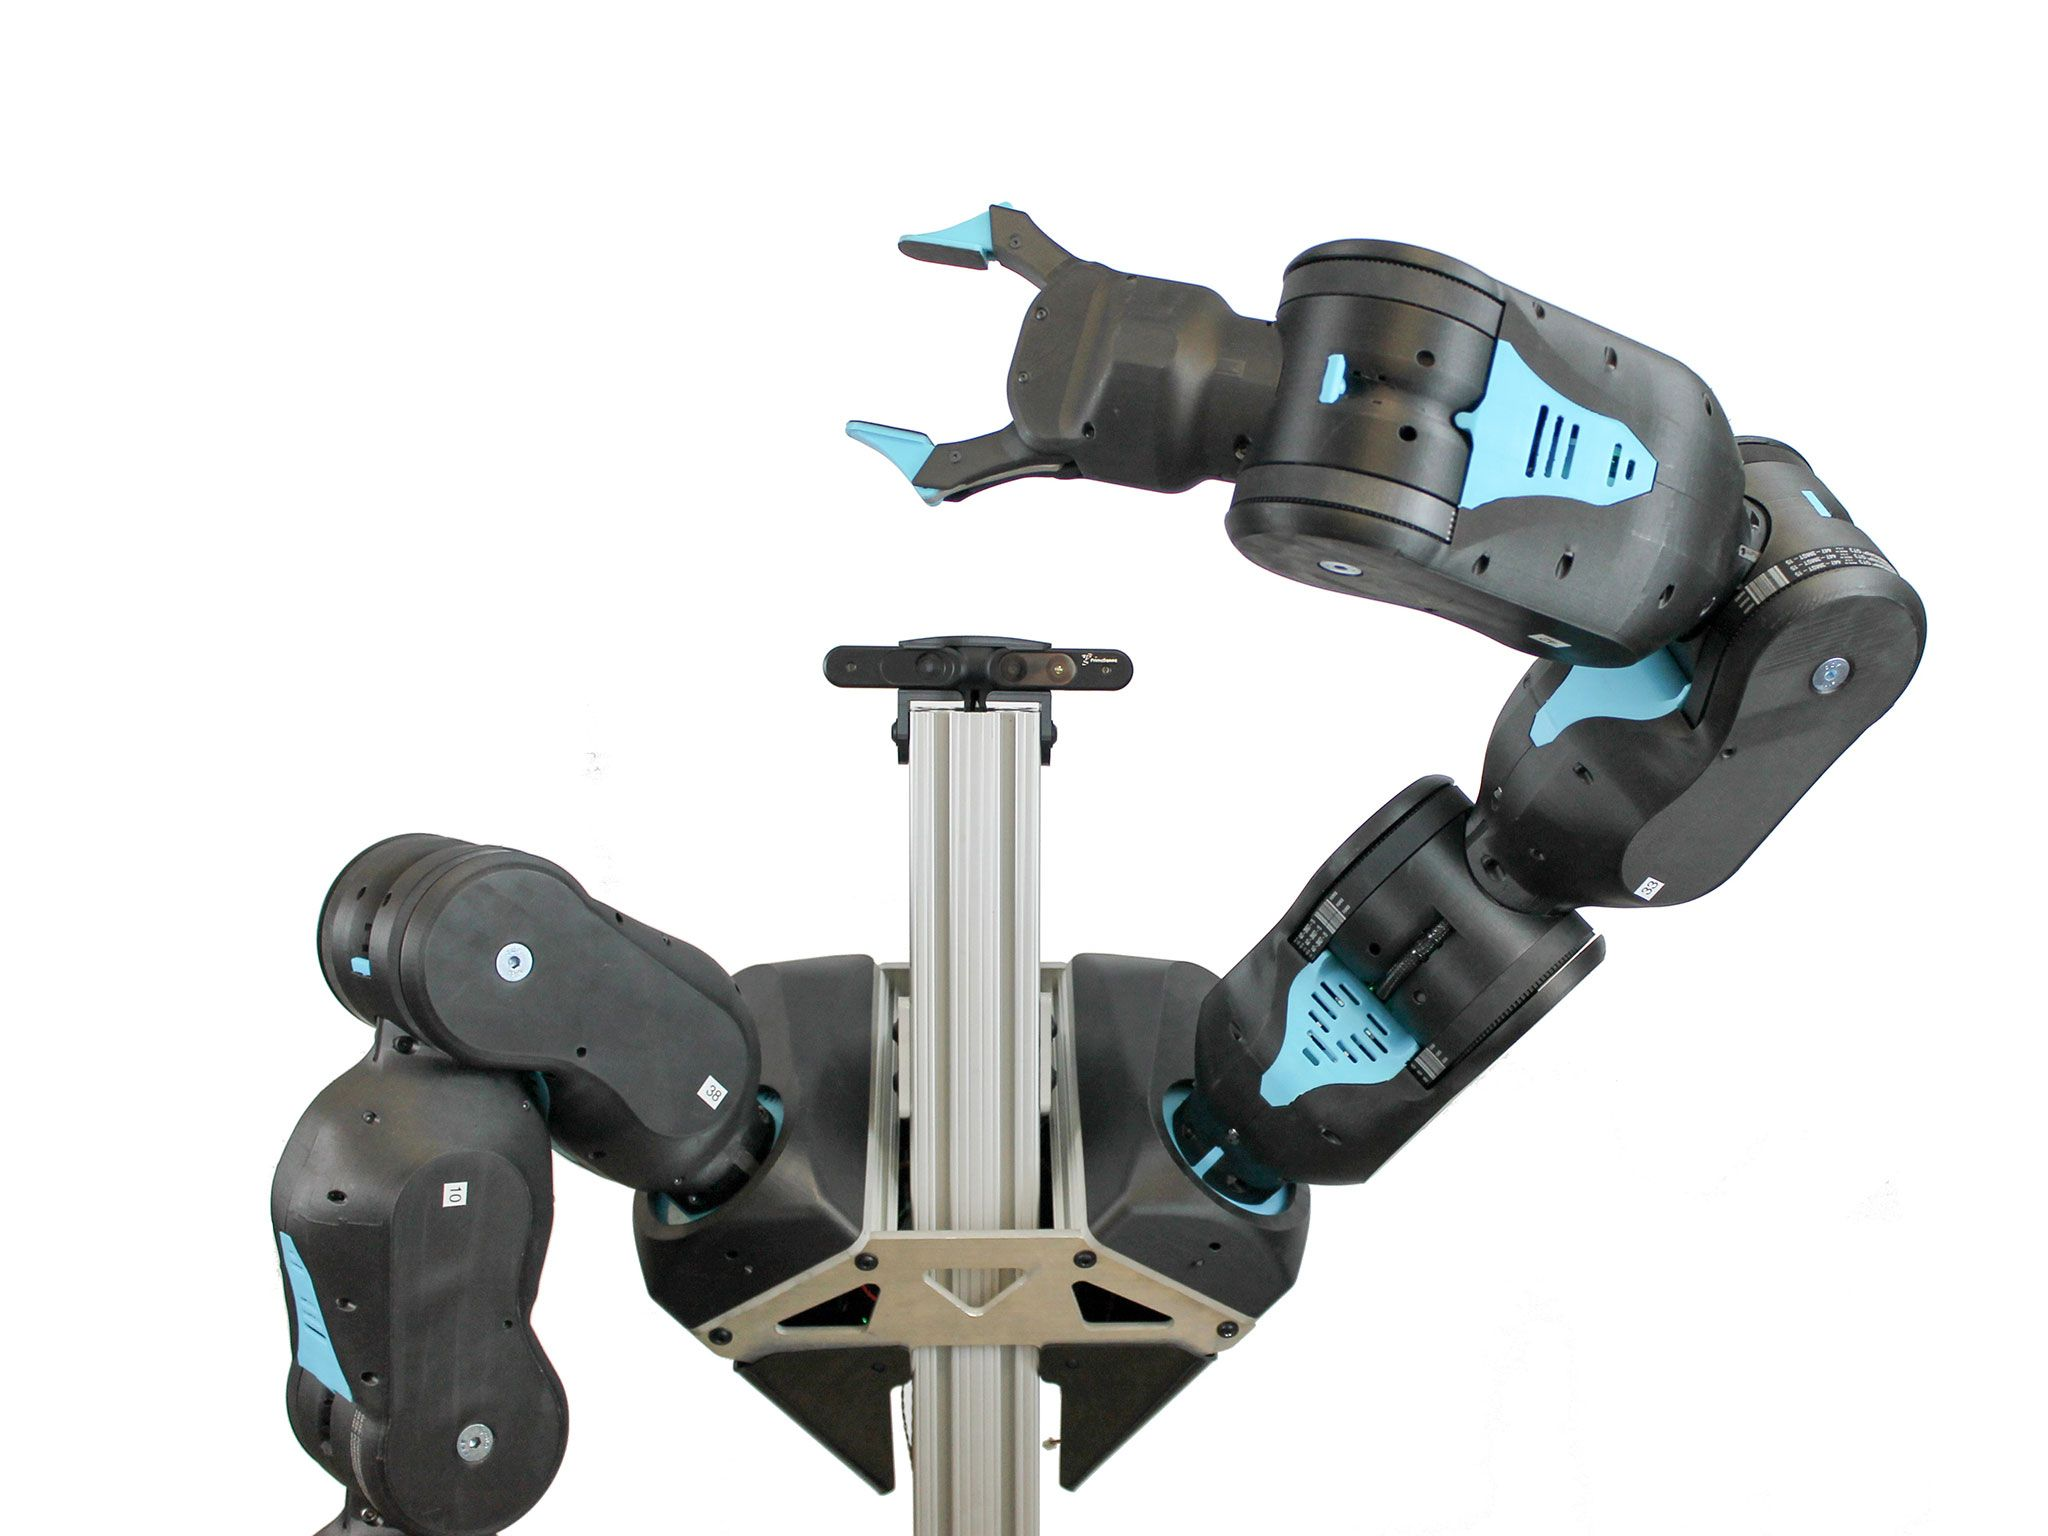 Blue Is A New Low Cost Force Controlled Robot Arm From UC